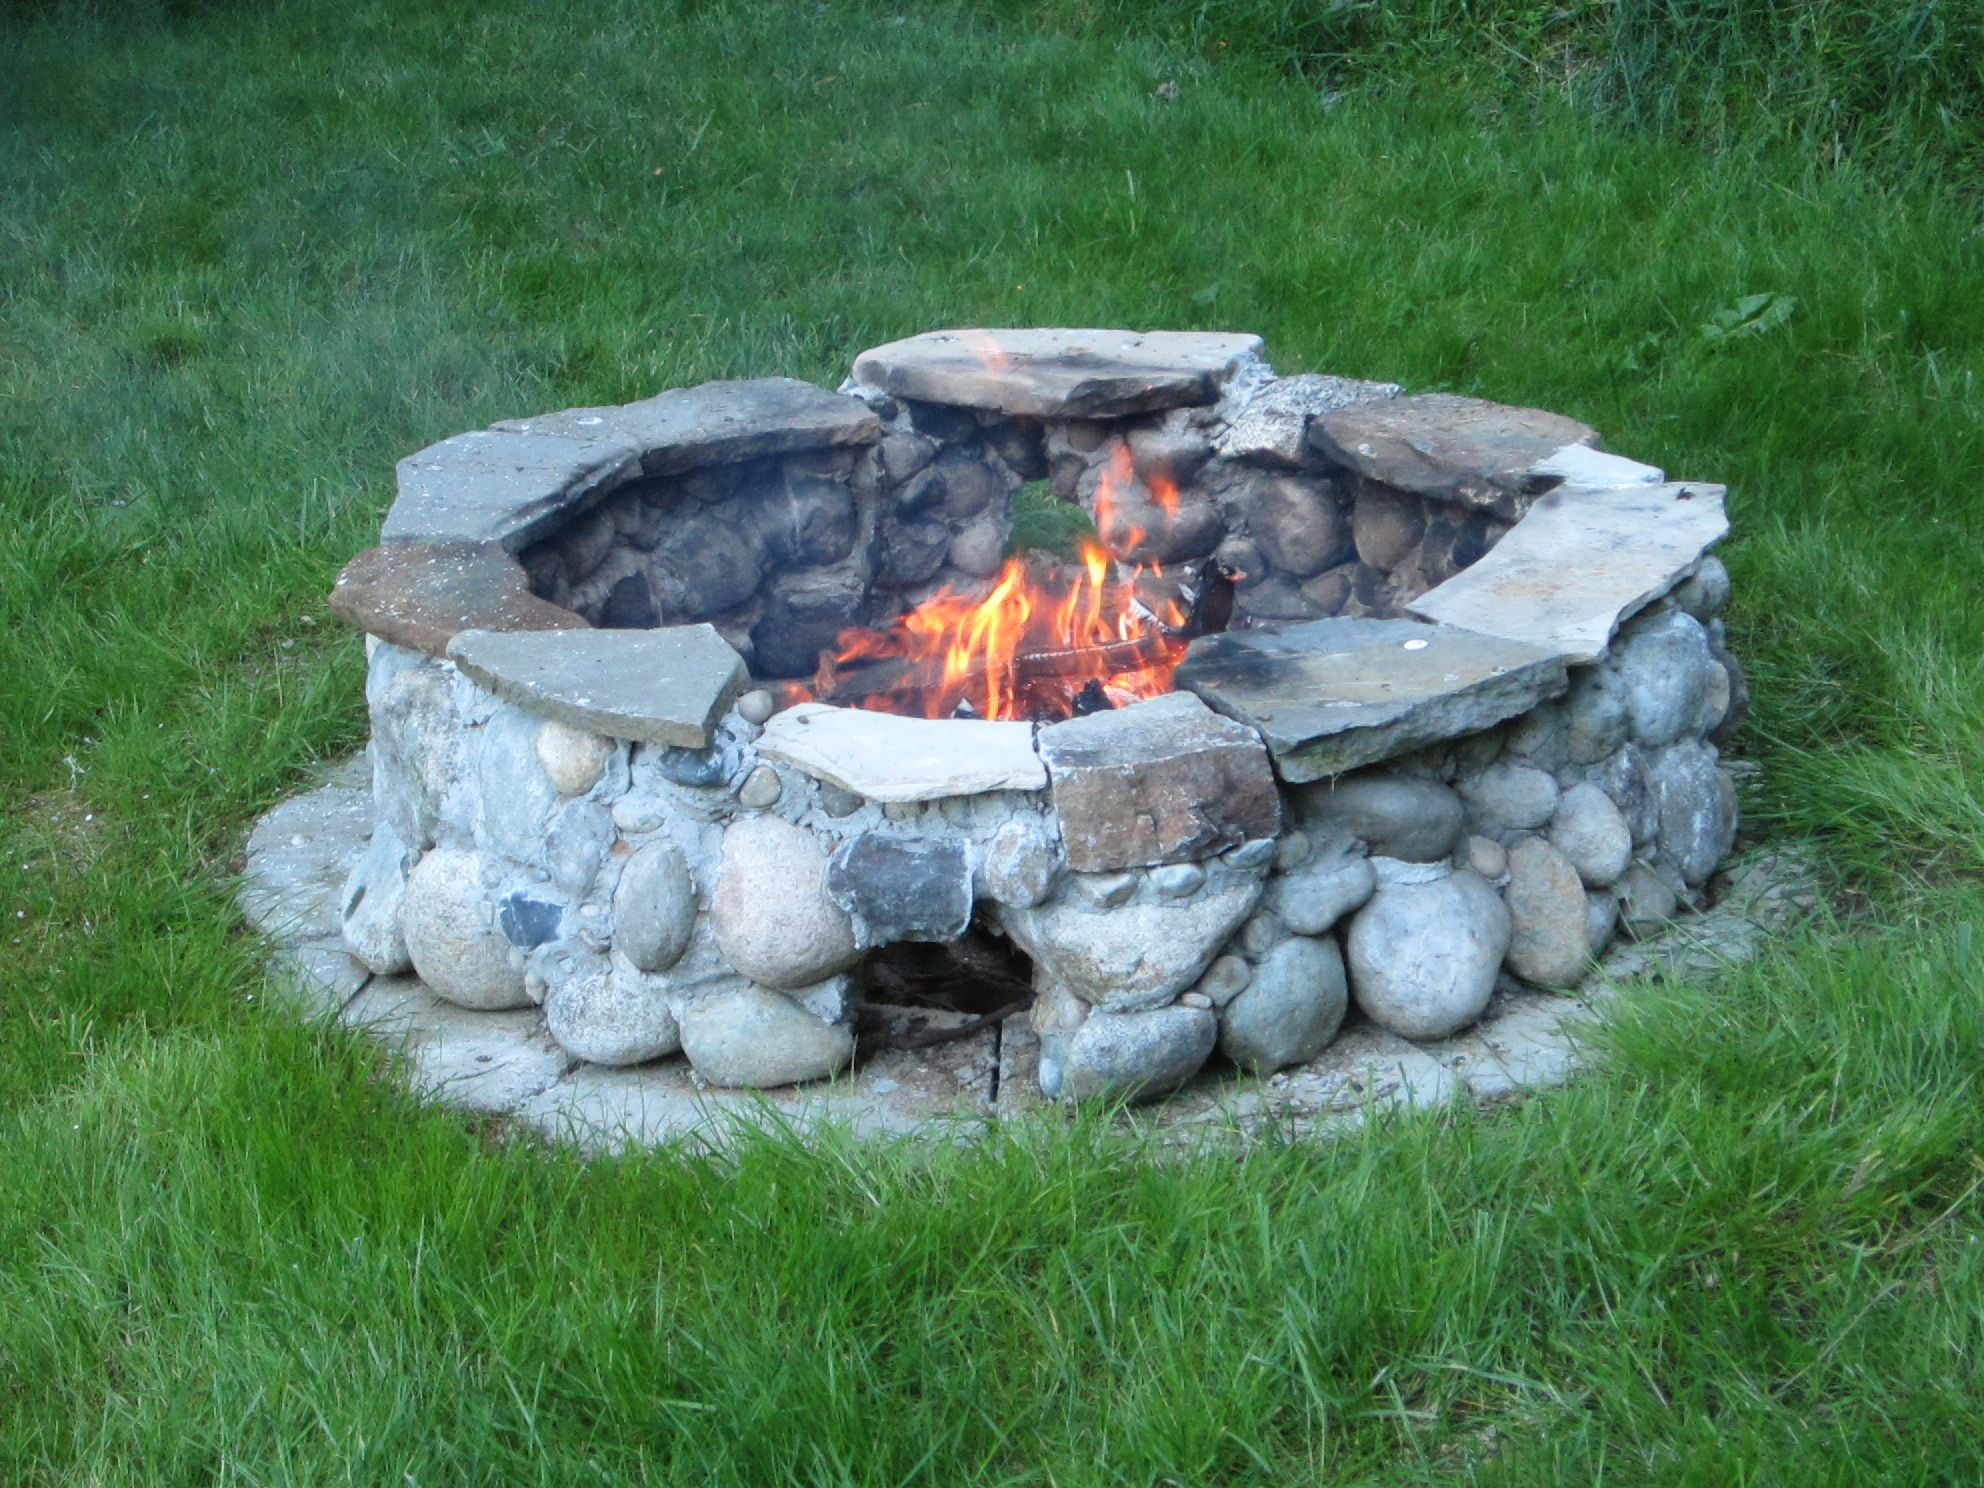 My Newly Built Fire Pit Mortared Native Stones With Four Air Vents Foot Warming Holes Around The Base The Stone Fire Pit Fire Pit Backyard Fire Pit Seating